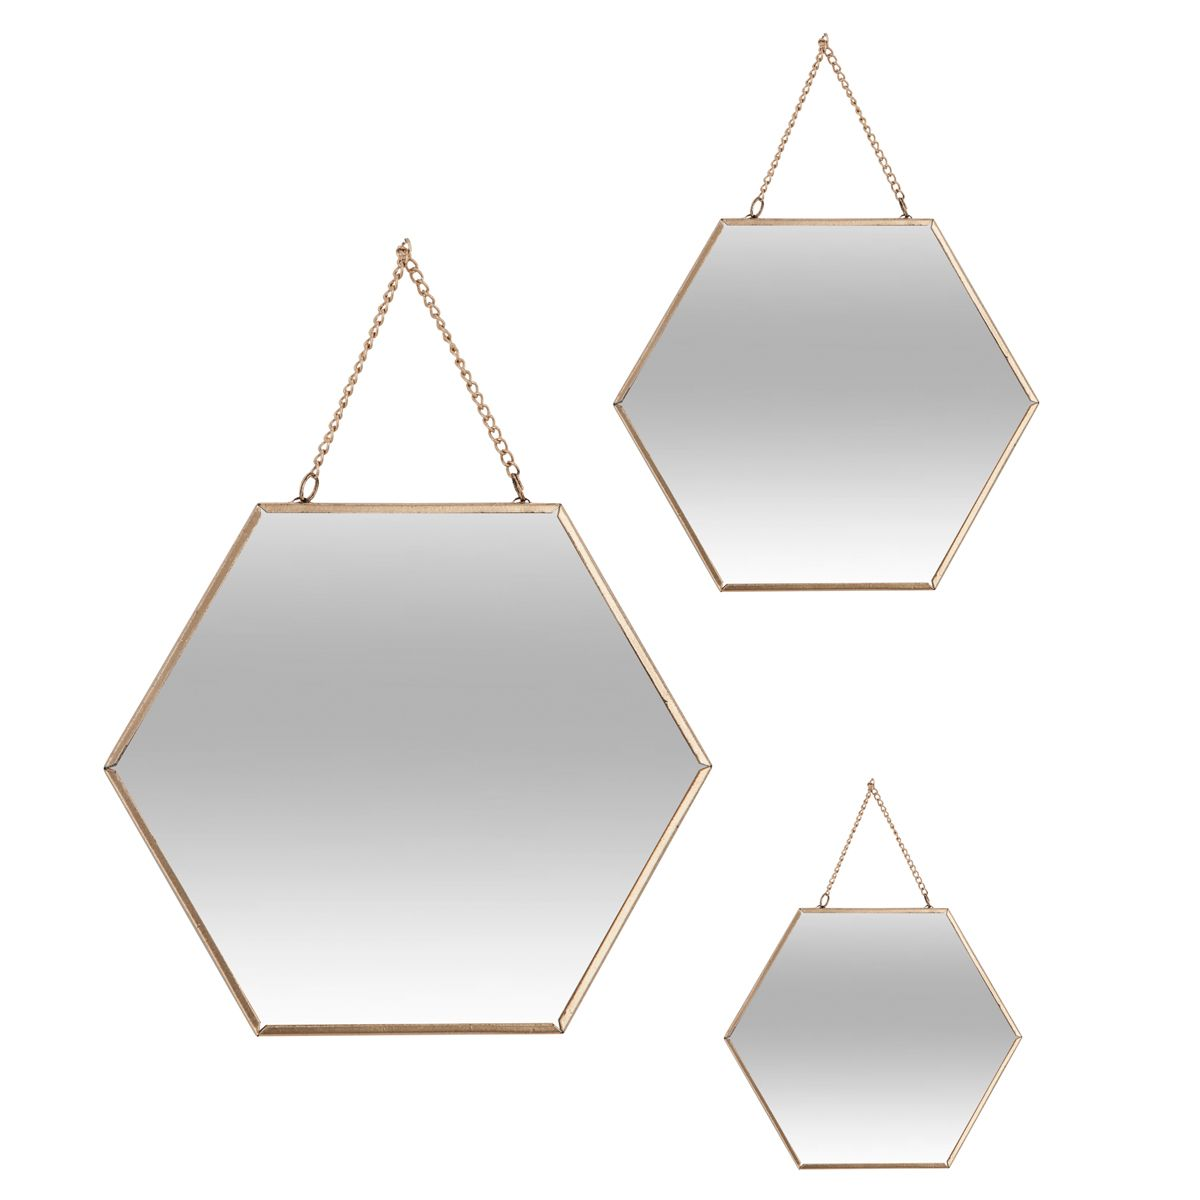 Lot 3 miroirs métal hexagone or